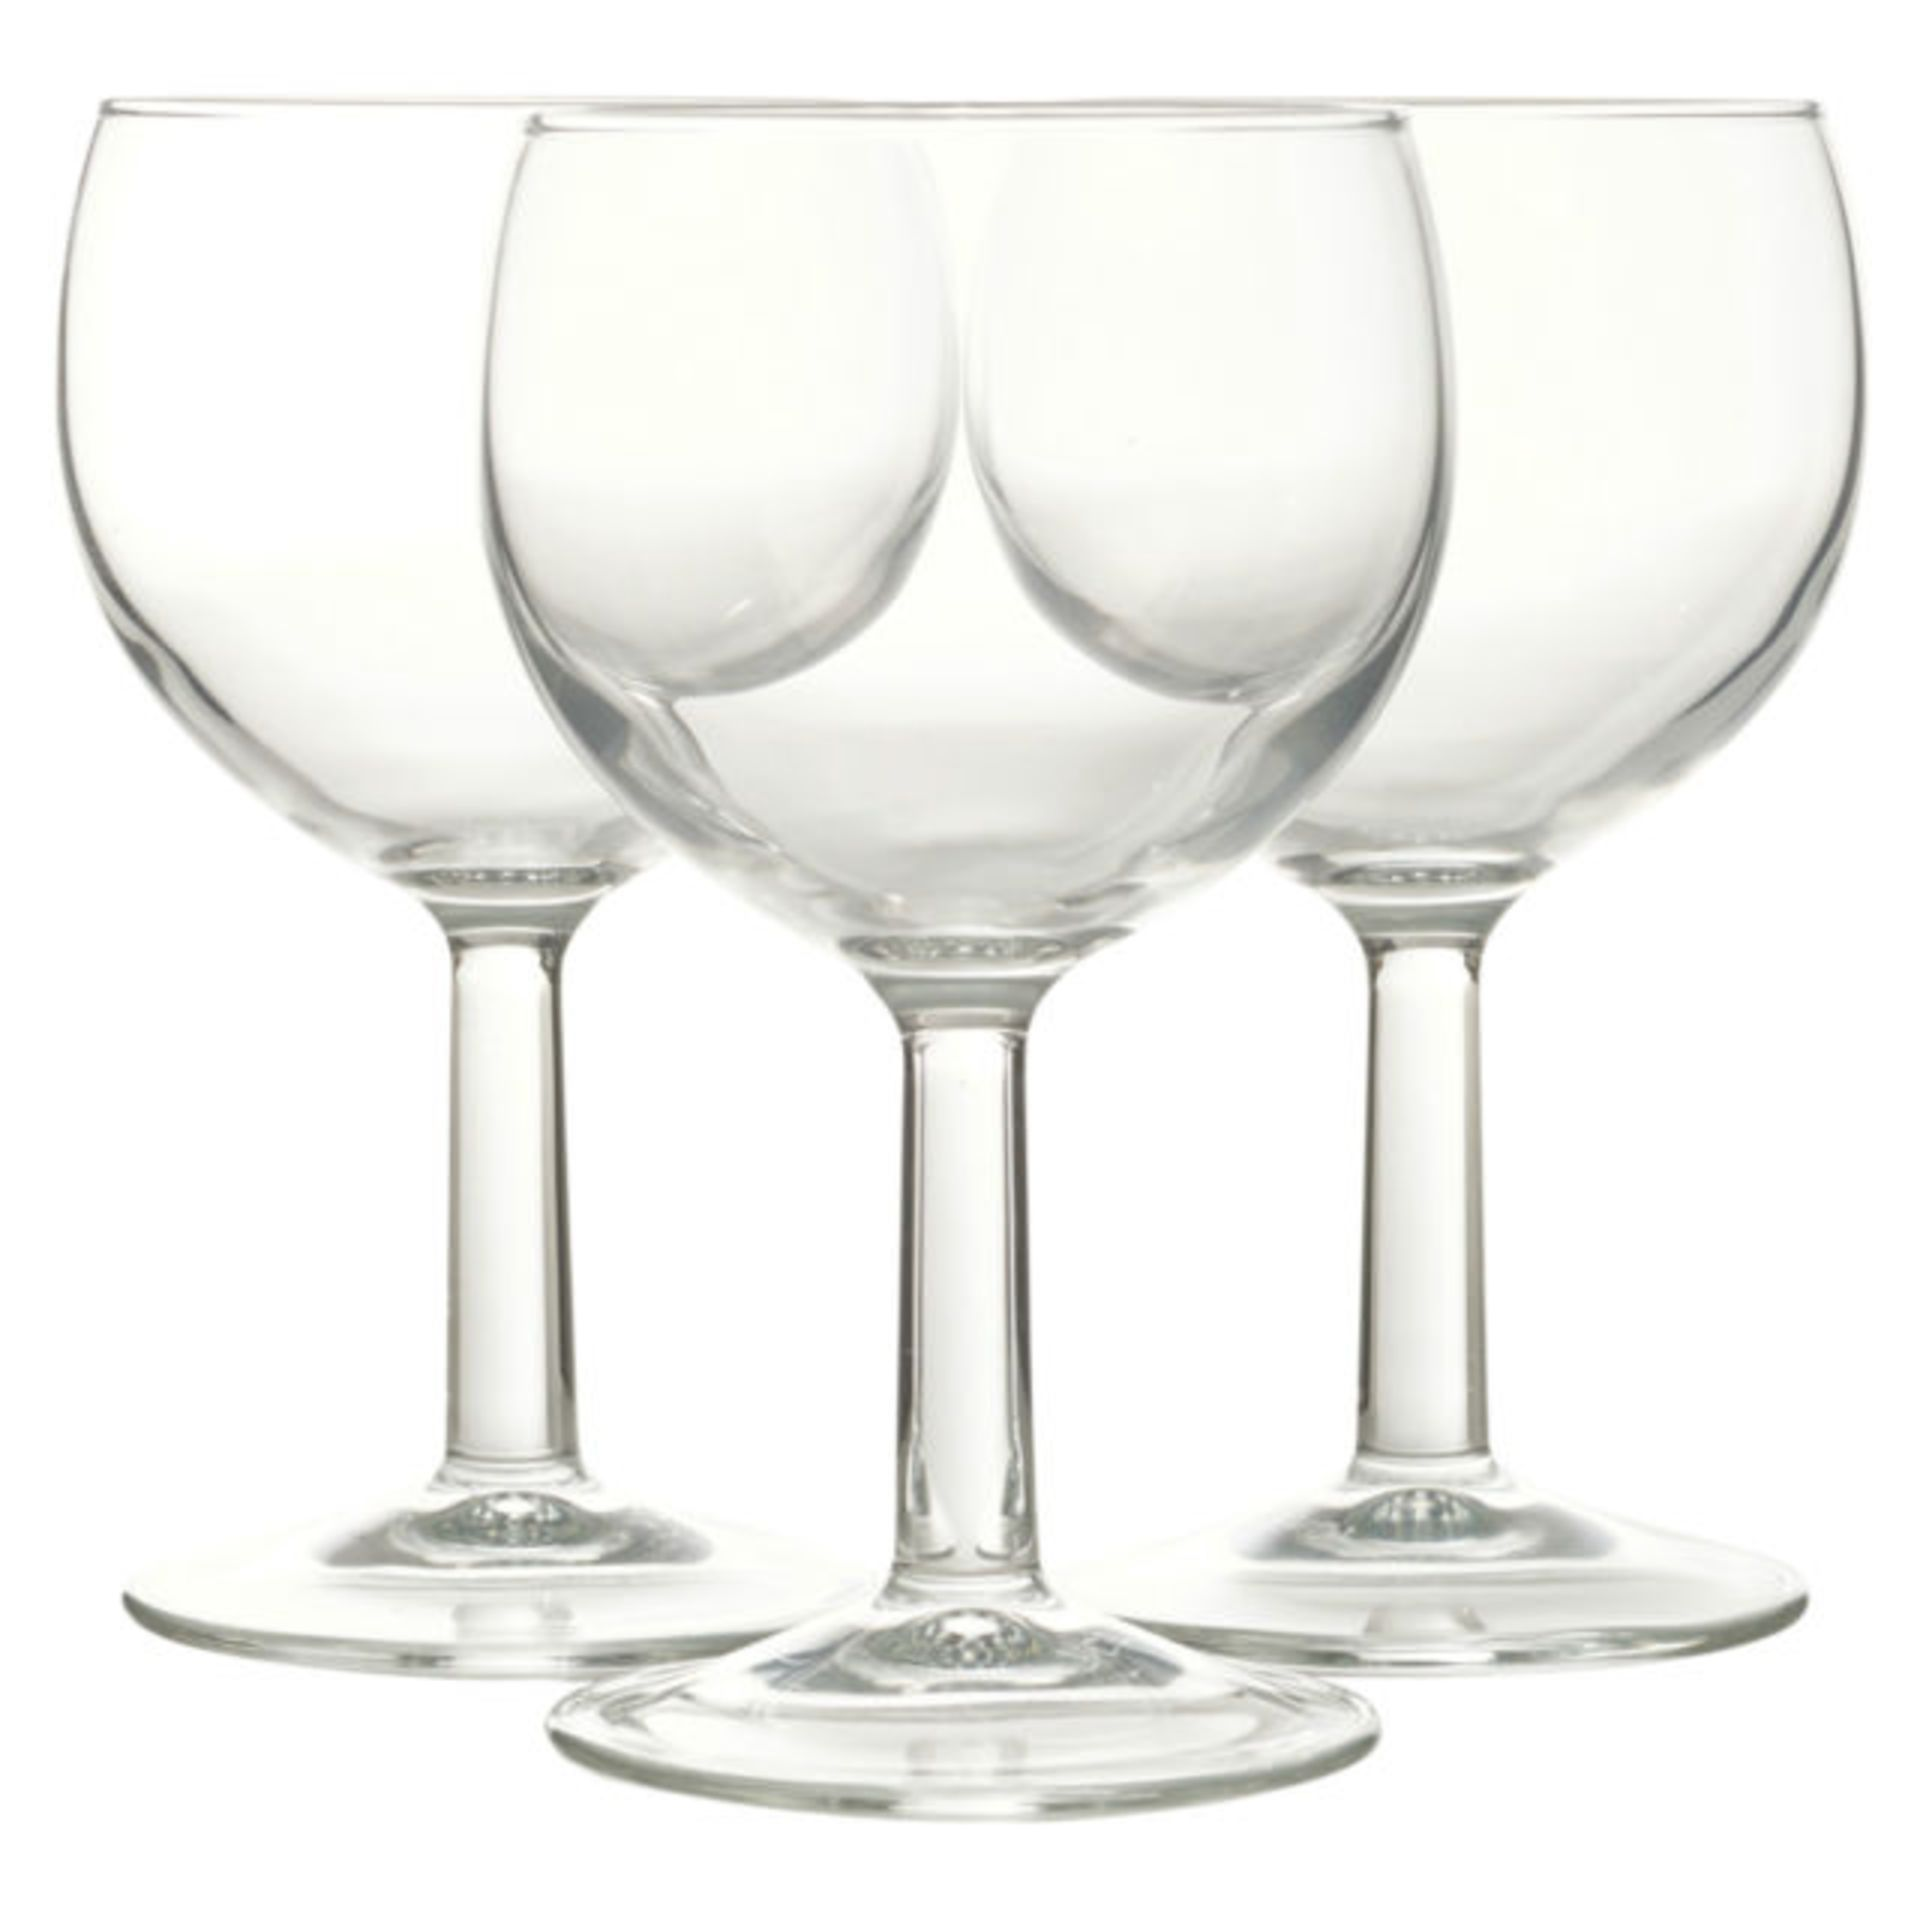 + VAT Brand New Red Wine Glasses - 3 x 25cl Glasses